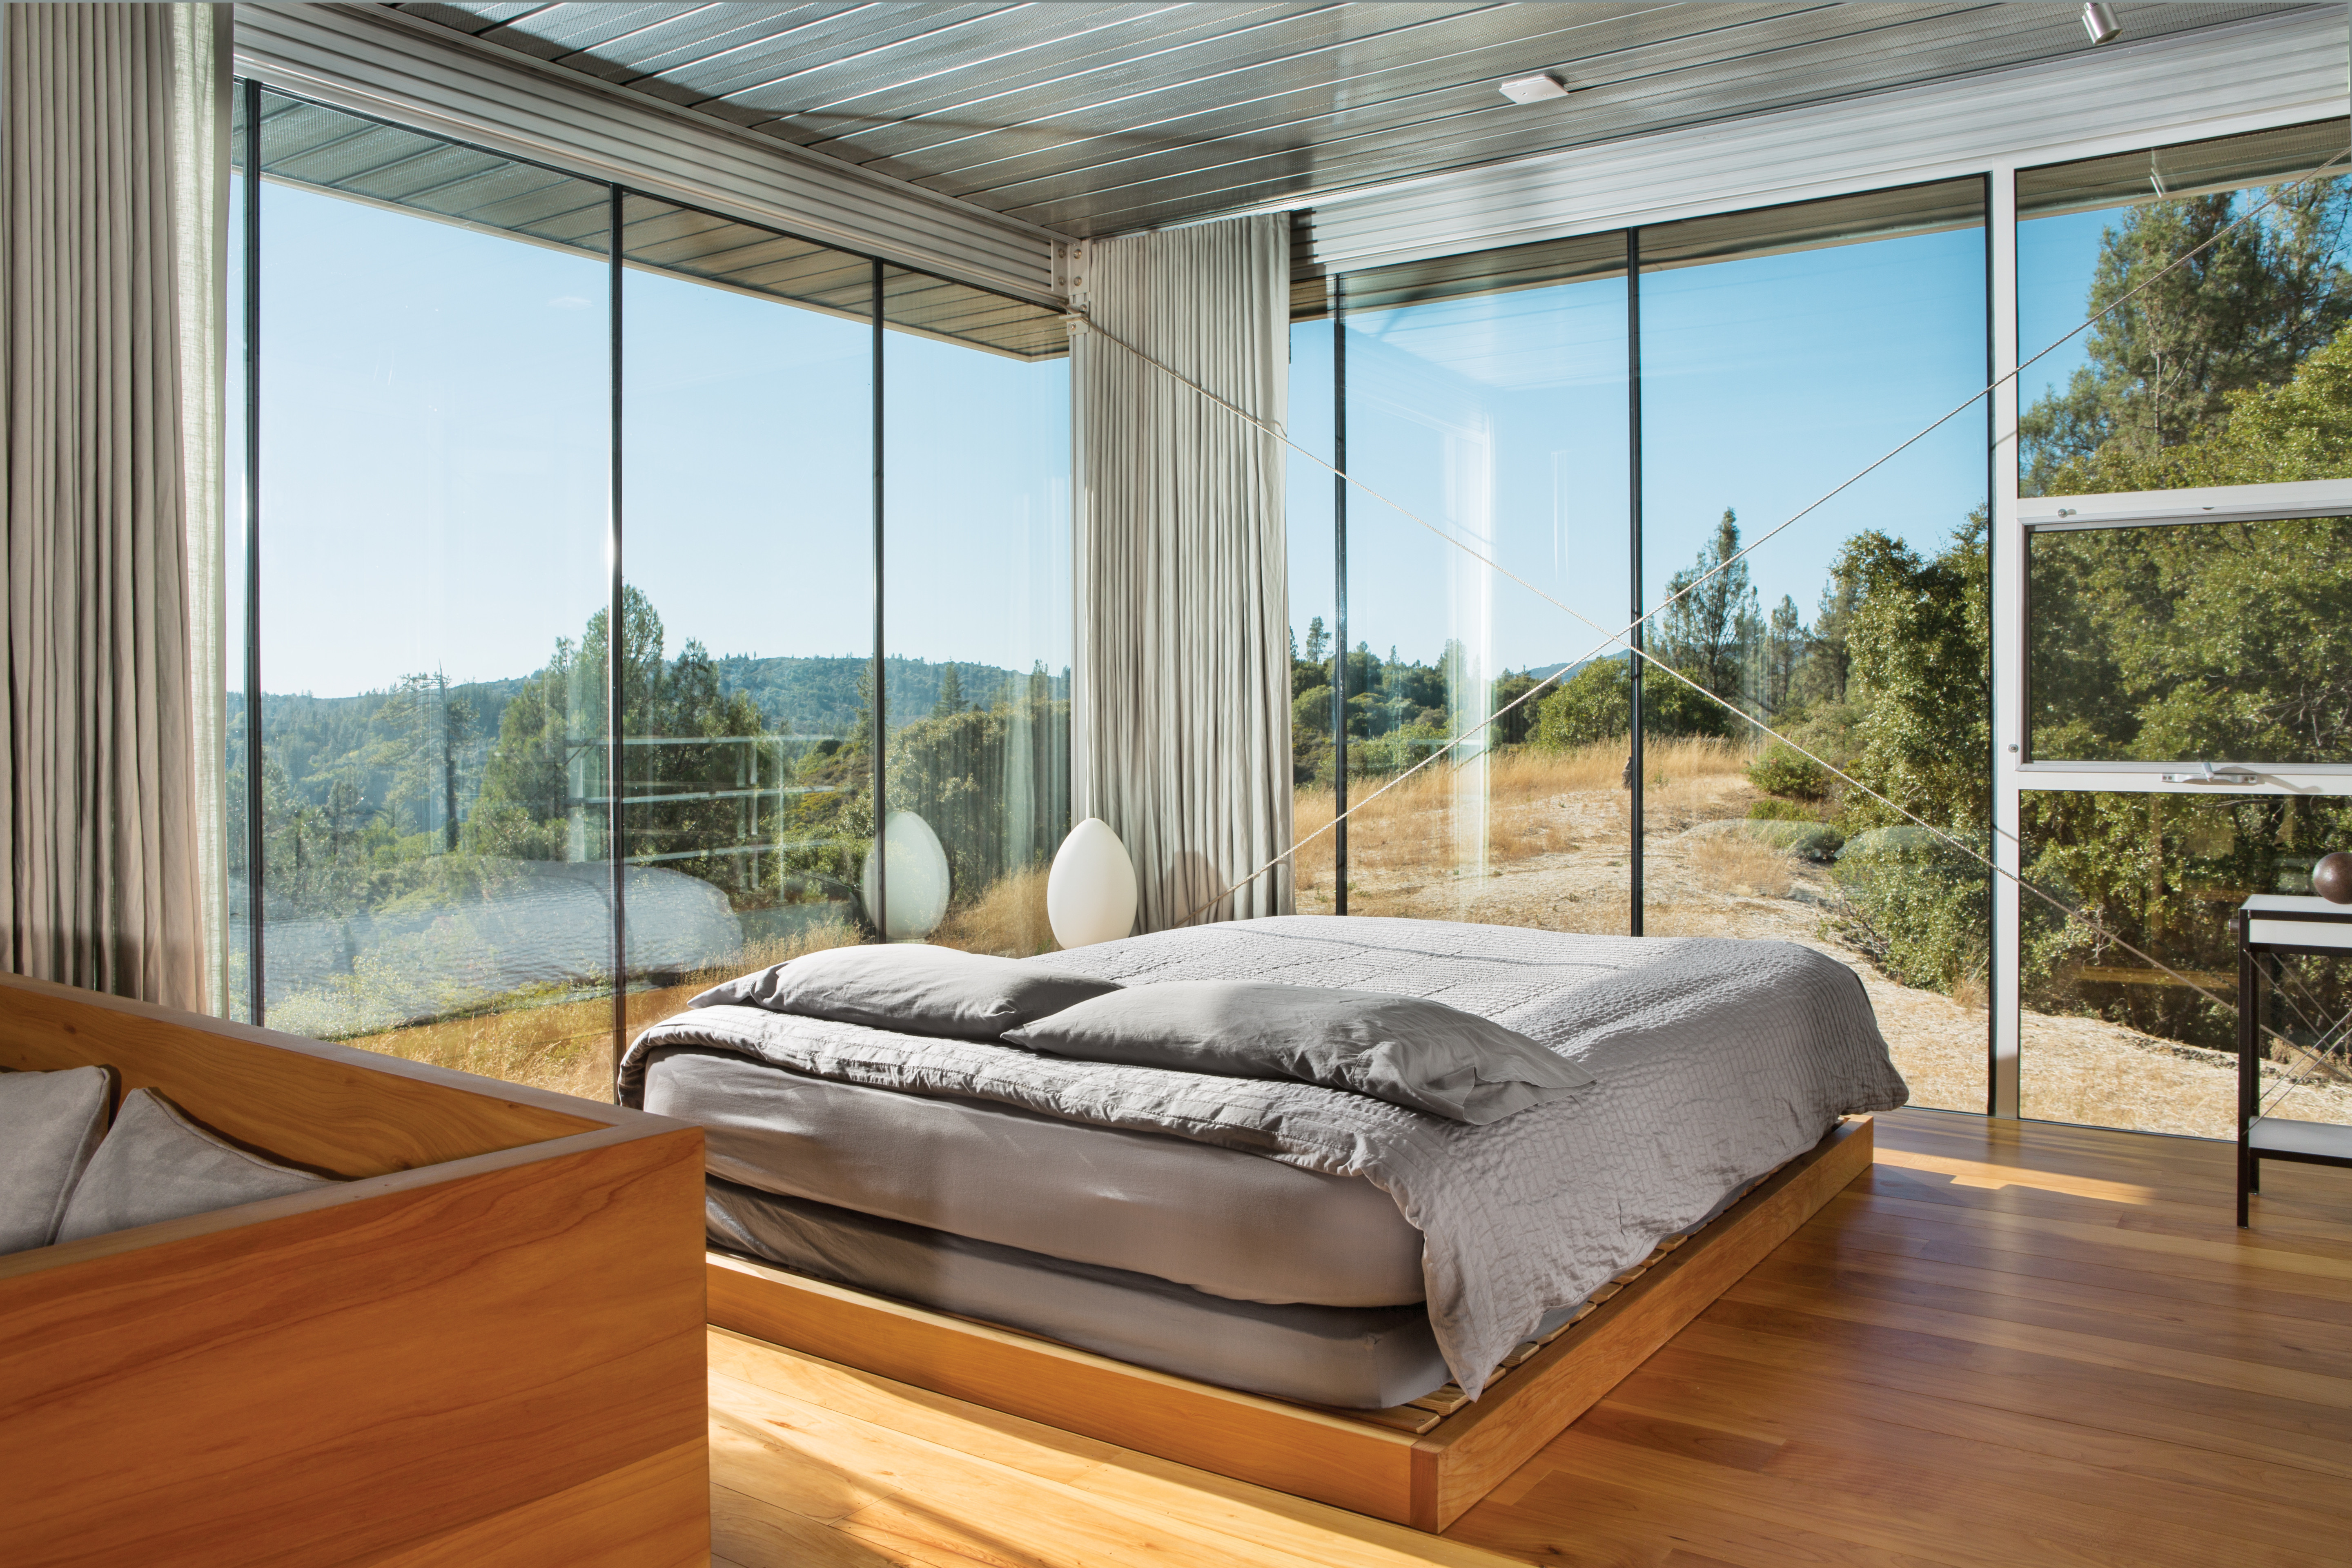 clearlake house interior bedroom